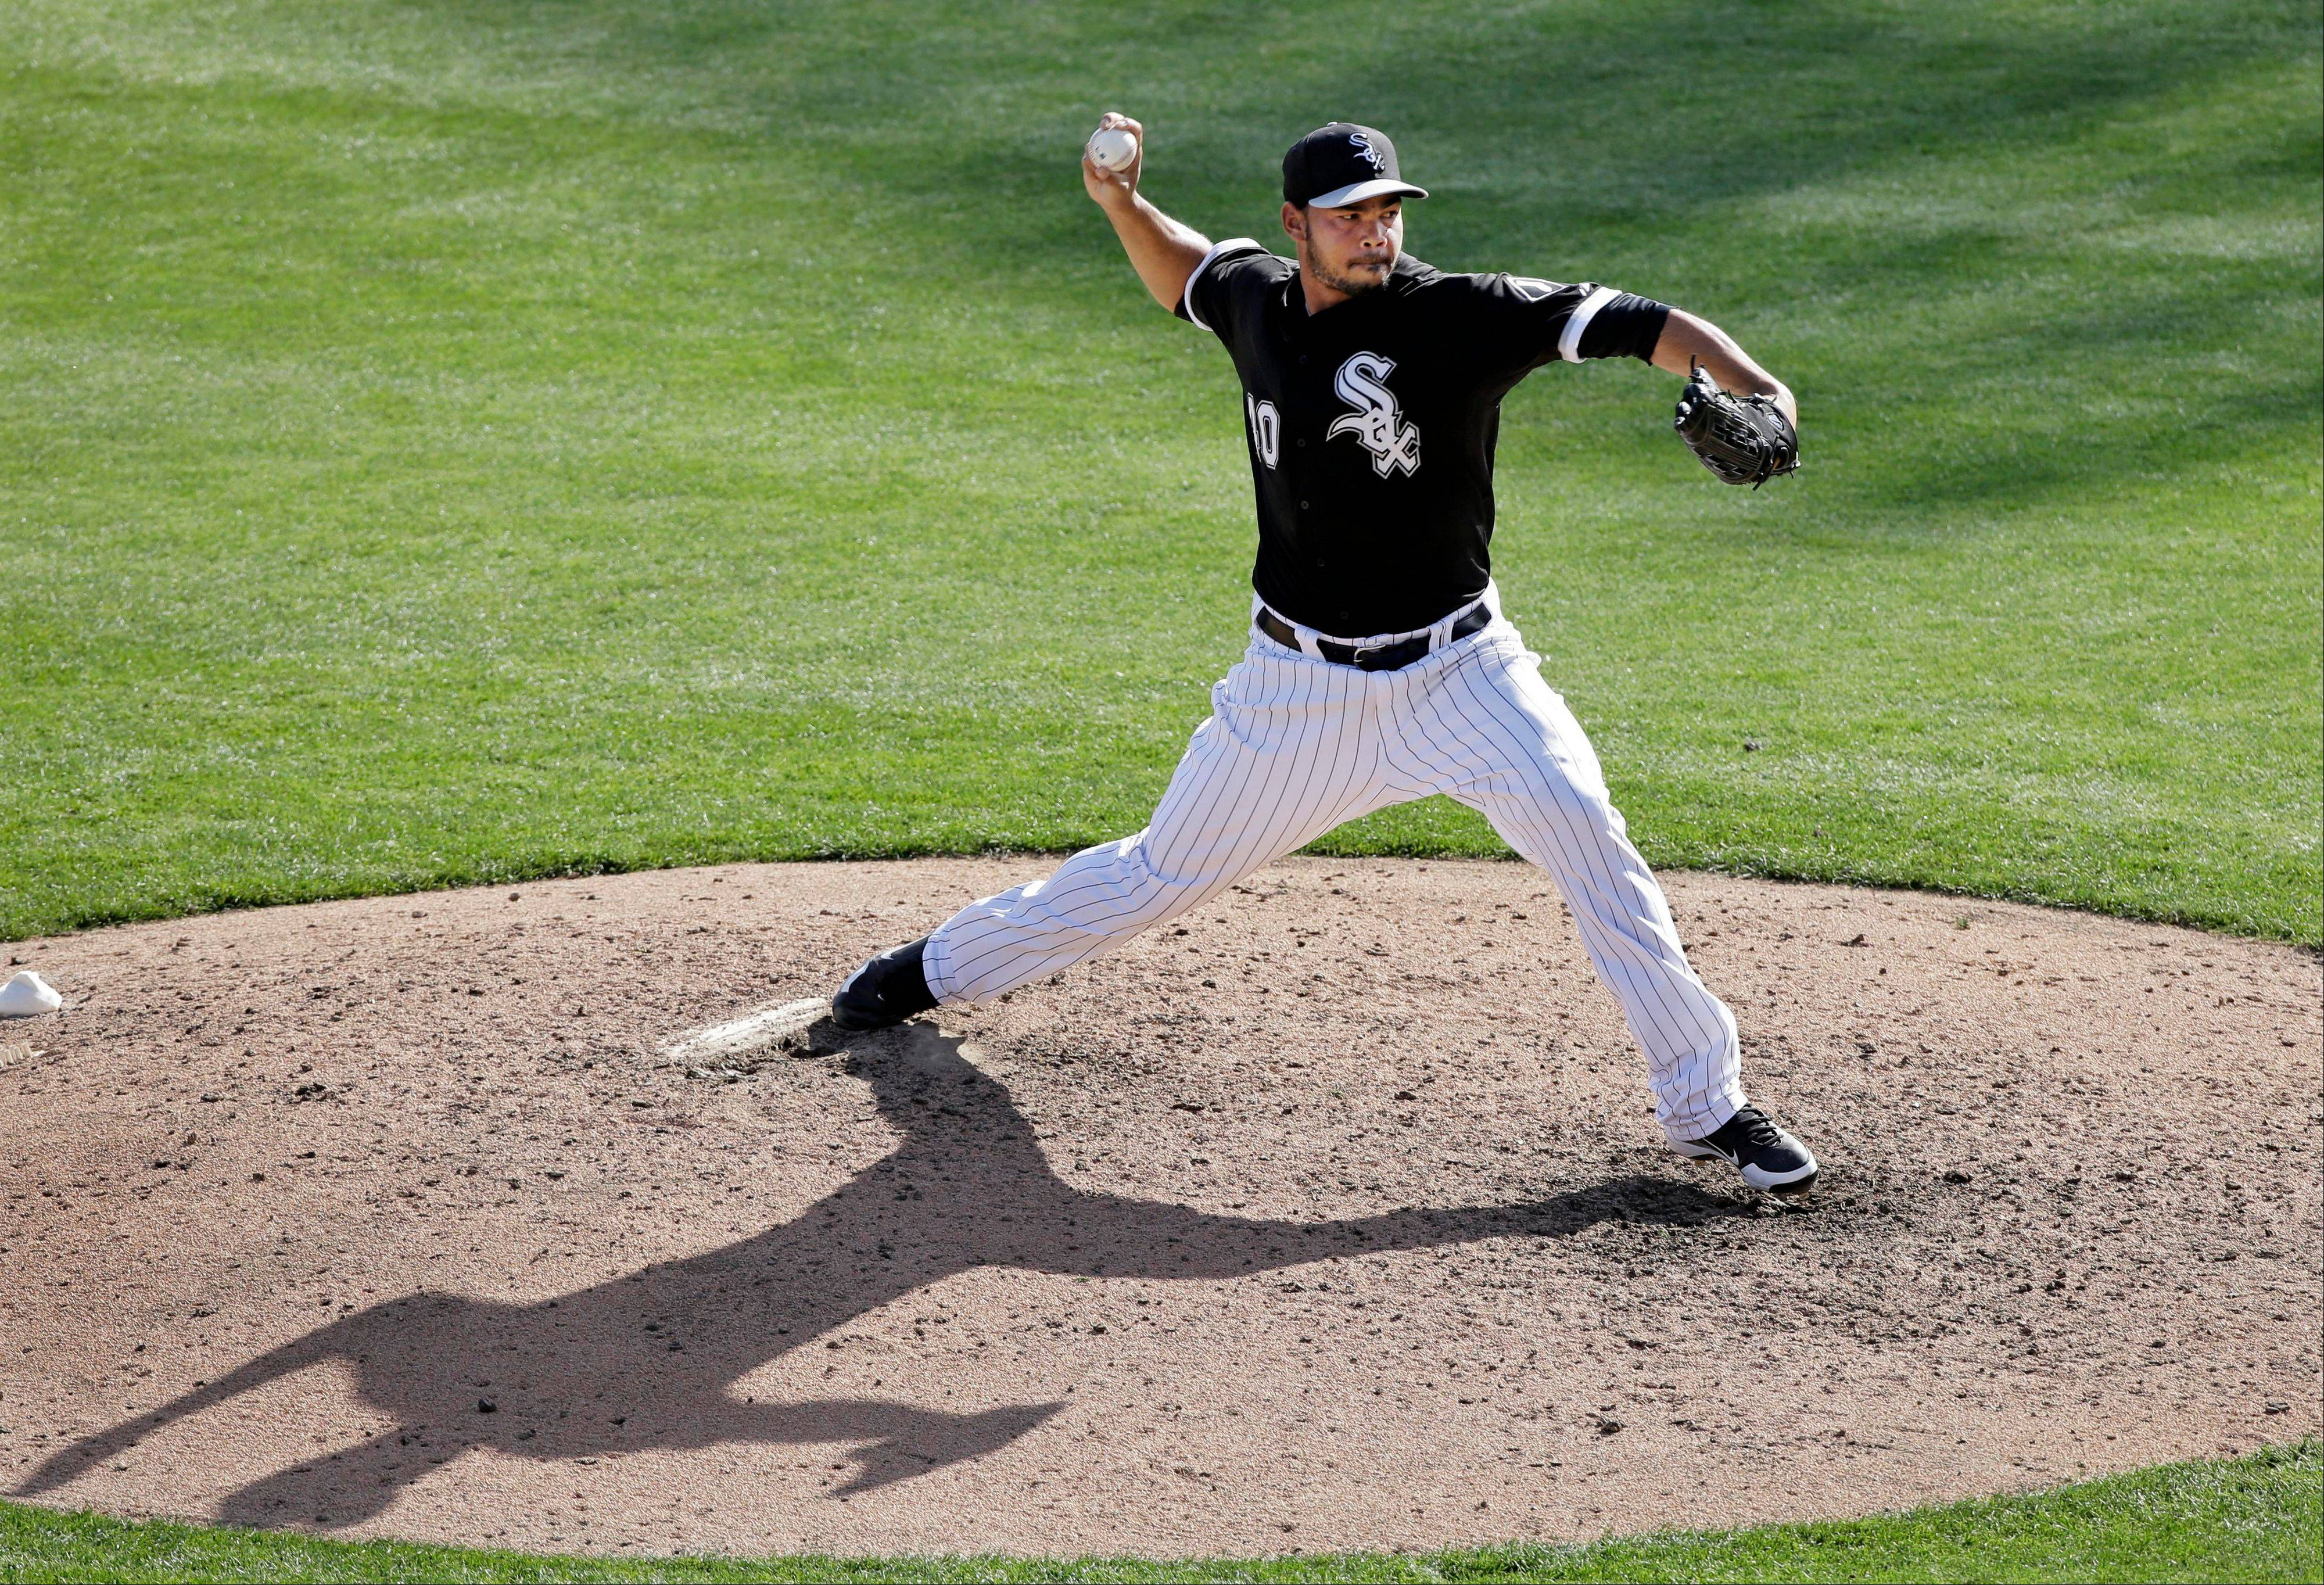 Chicago White Sox's Ramon Troncoso pitches against the Cincinnati Reds in the ninth inning of a spring training baseball game Saturday, March 2, 2013, in Glendale, Ariz. The White Sox defeated the Reds 4-0.